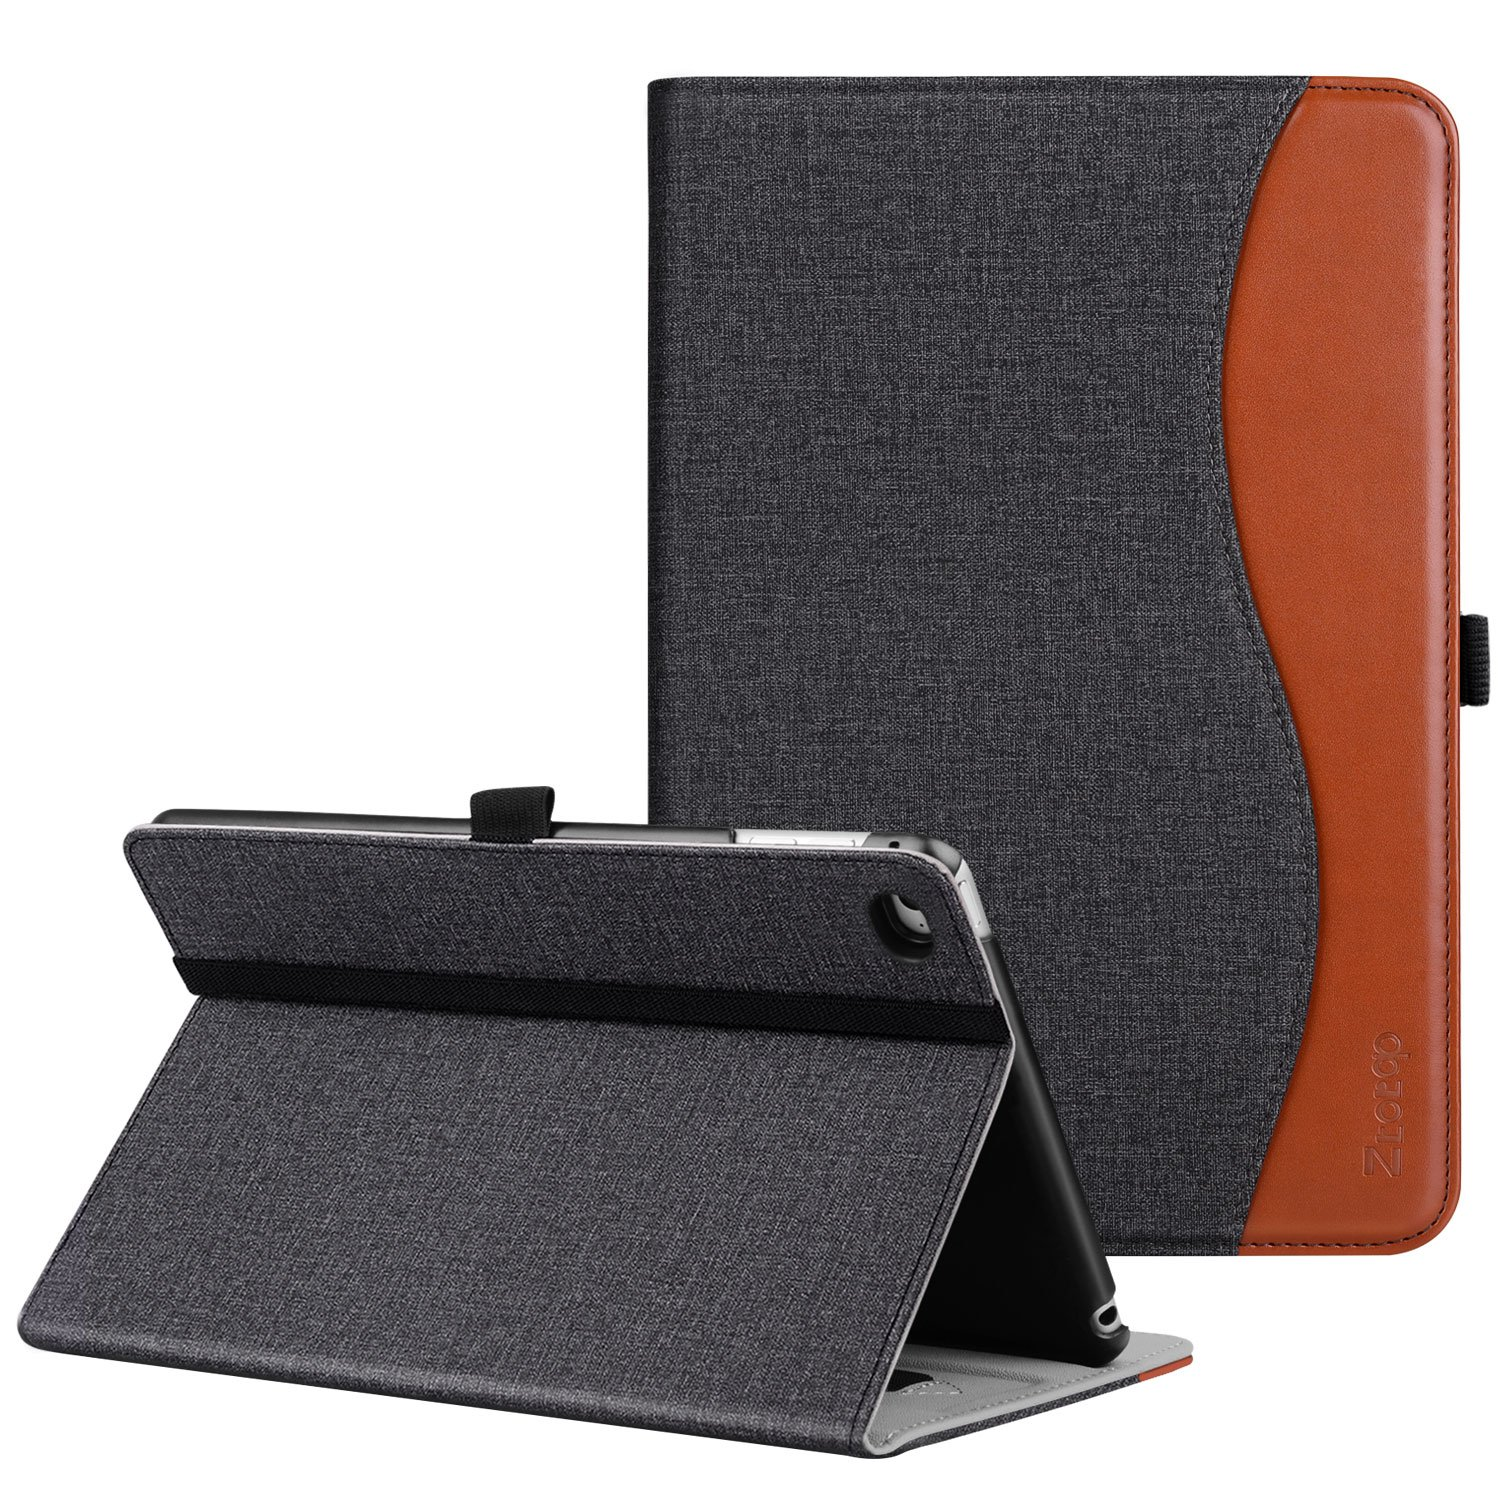 Ztotop iPad Mini 4 Case, Leather Folio Stand Protective Case Smart Cover with Multi-Angle Viewing, Paperwork Card Pocket, Functional Elastic Strap for iPad Mini 4 - Denim Dual Color